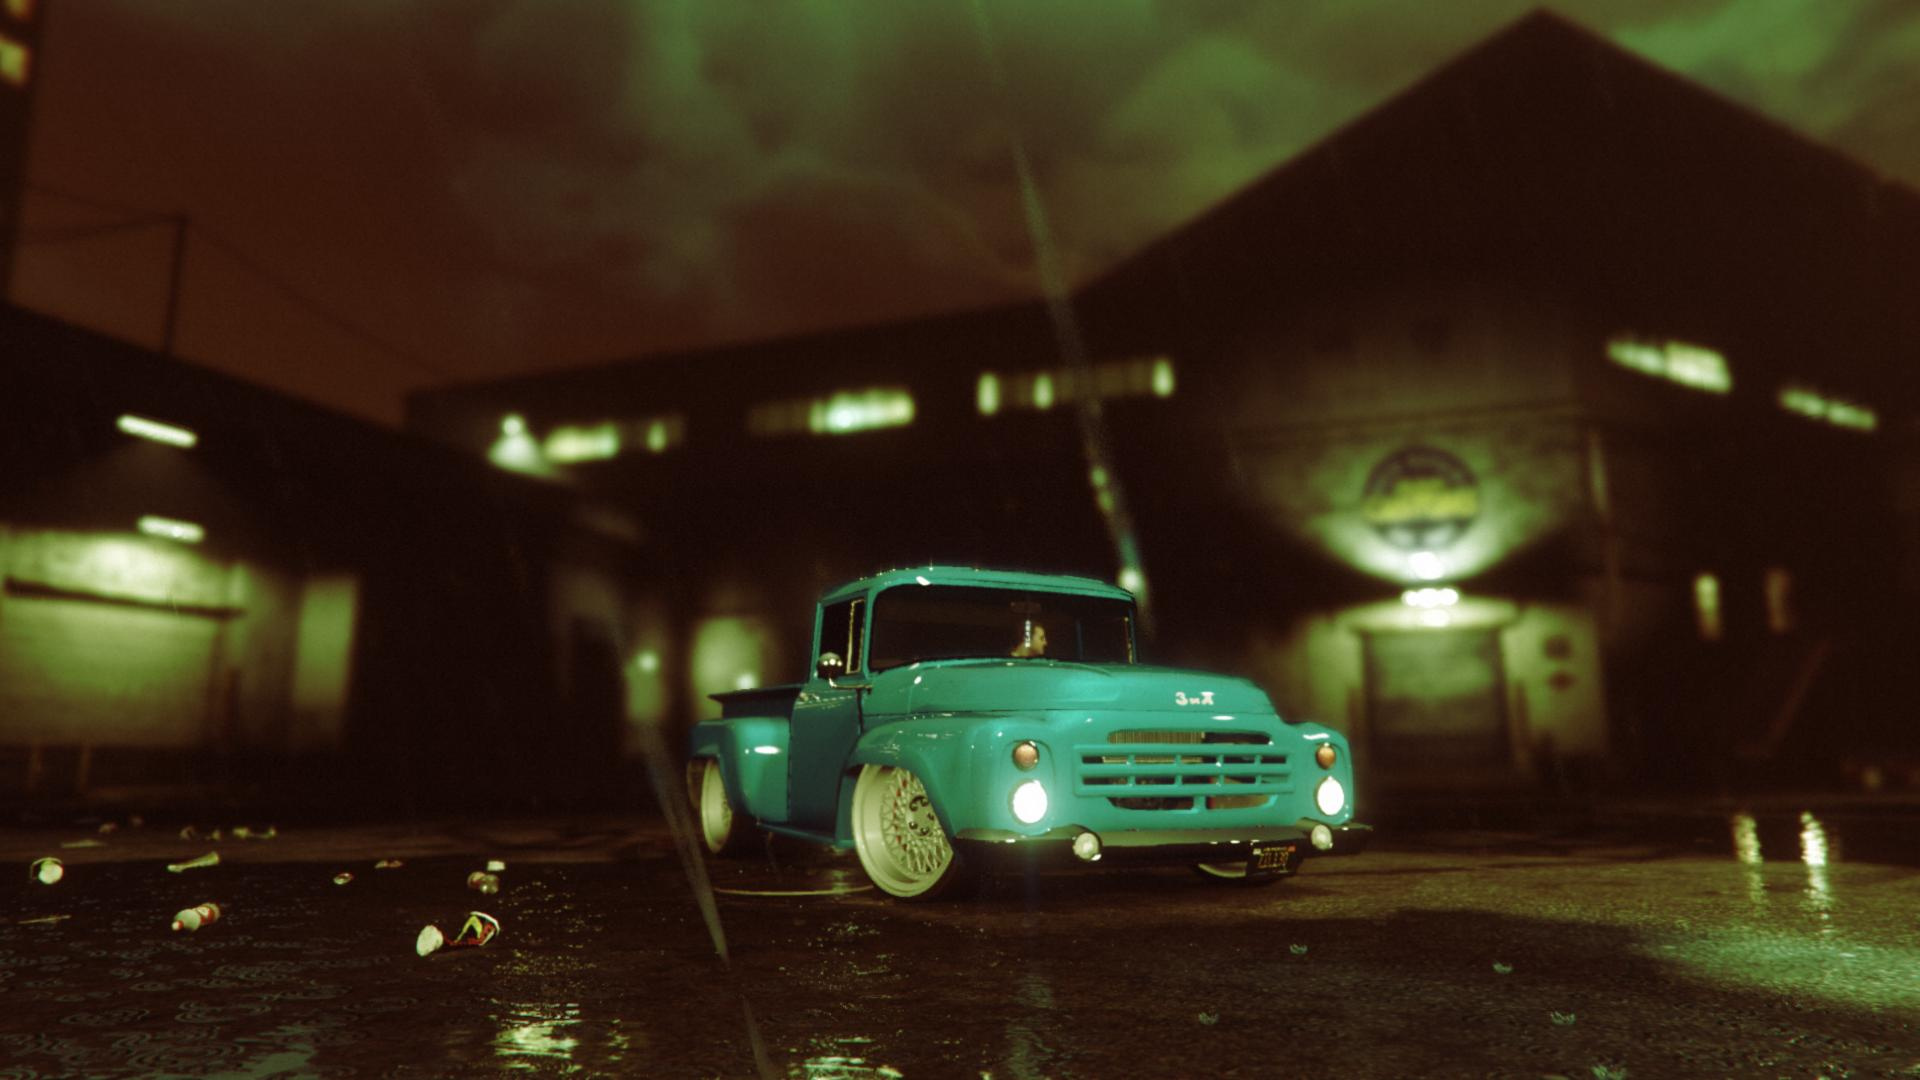 Zil 130 Hot Rod Add On 1954 Chevy Chopped And Bagged Rat 261255 Gta5 2017 07 12 21 09 31 96